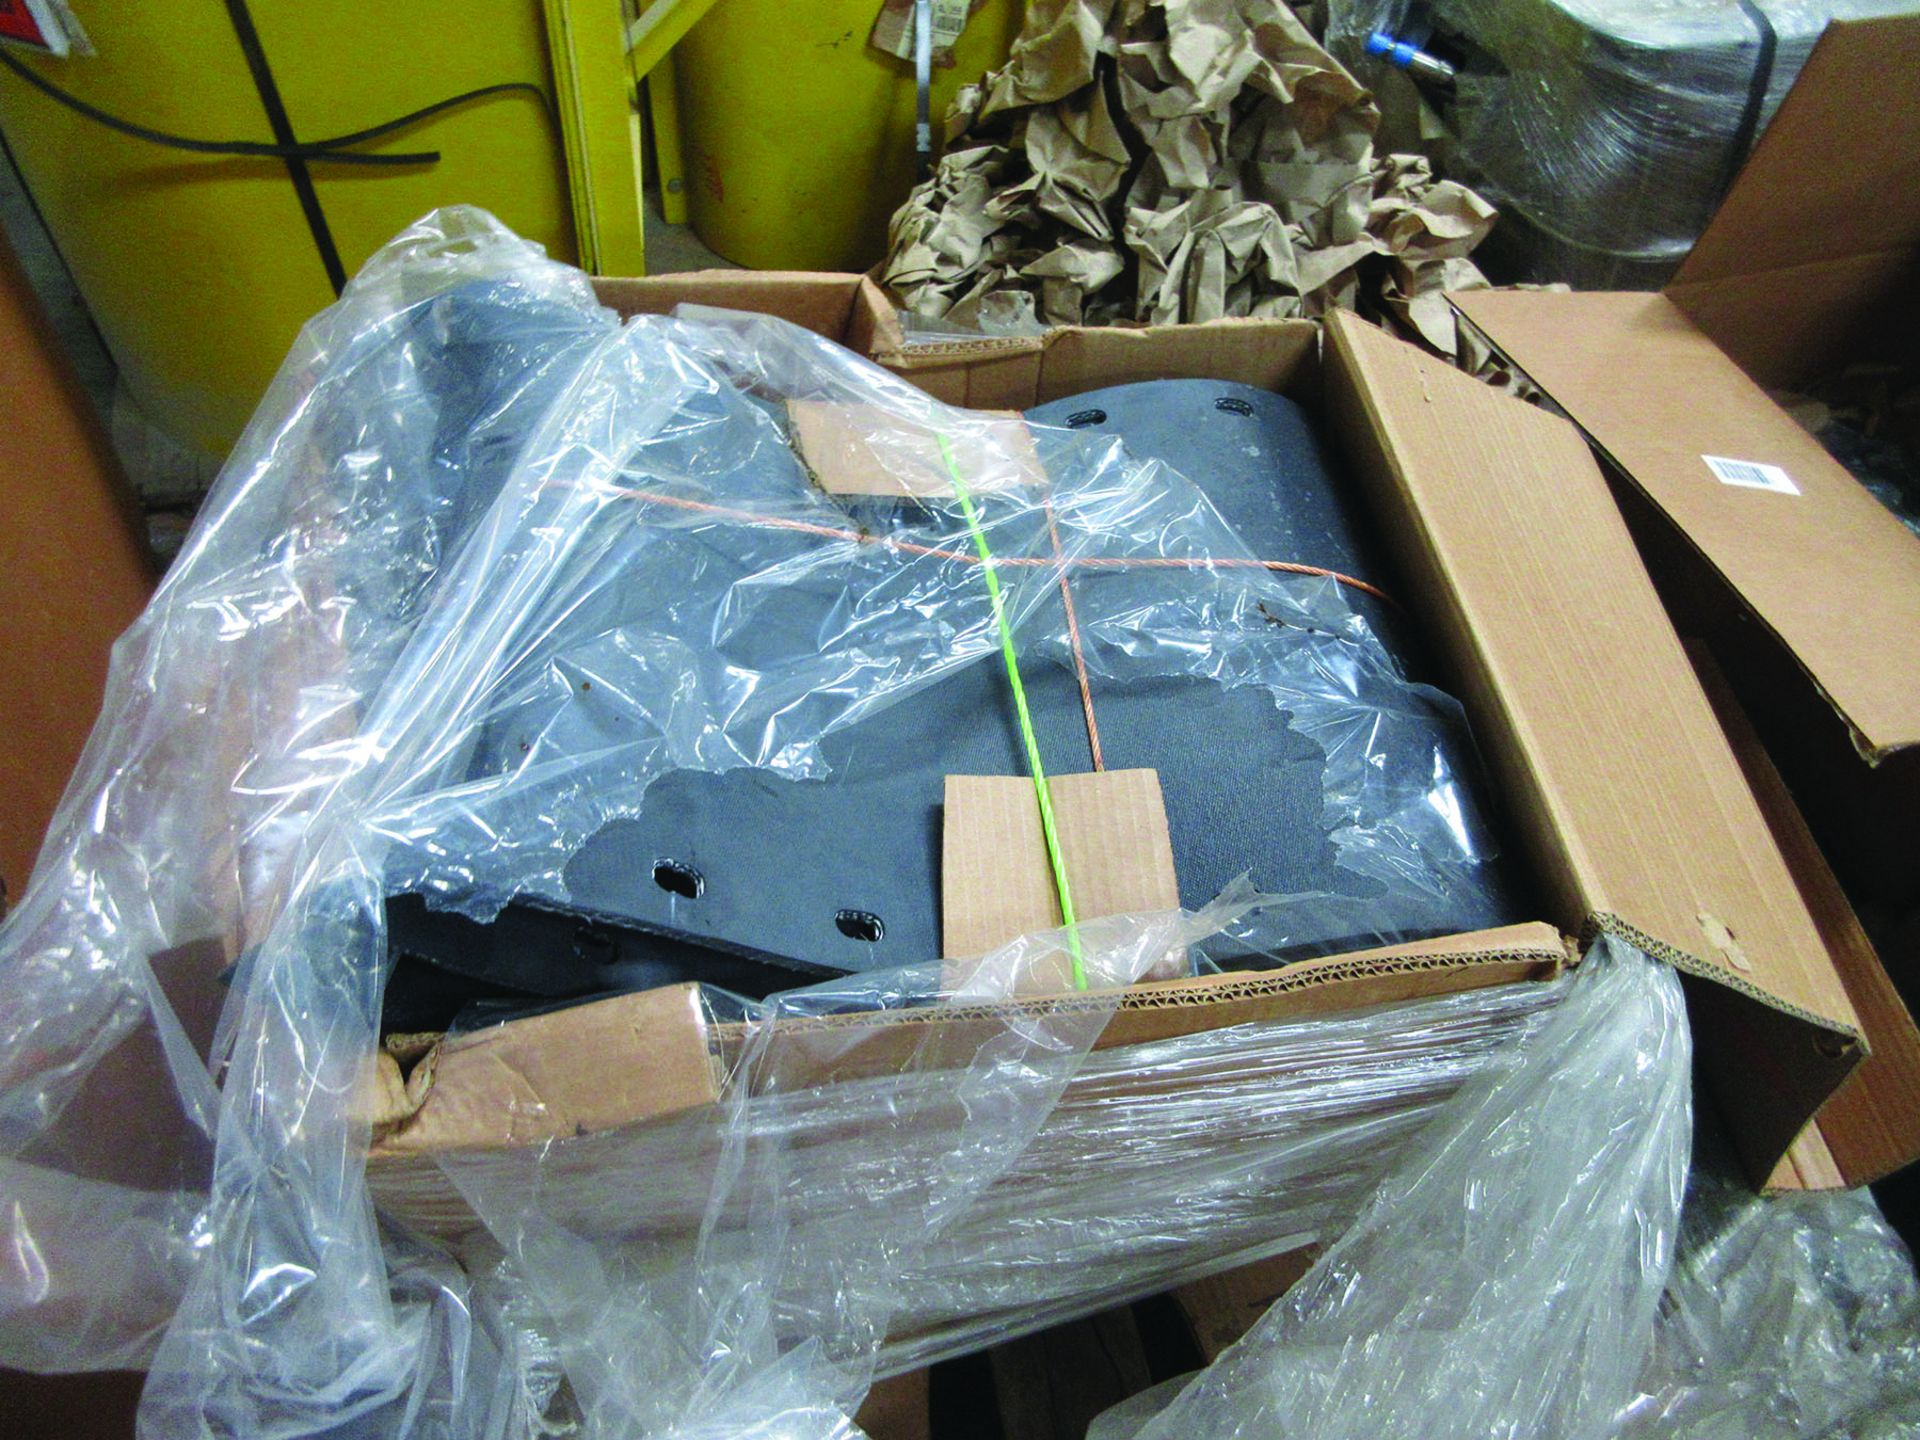 LOT OF ASSORTED PARTS: BARSETS, SHAFT COUPLINGS, COUPLING GUARDS, AND MORE, GRID A7 - Image 9 of 16